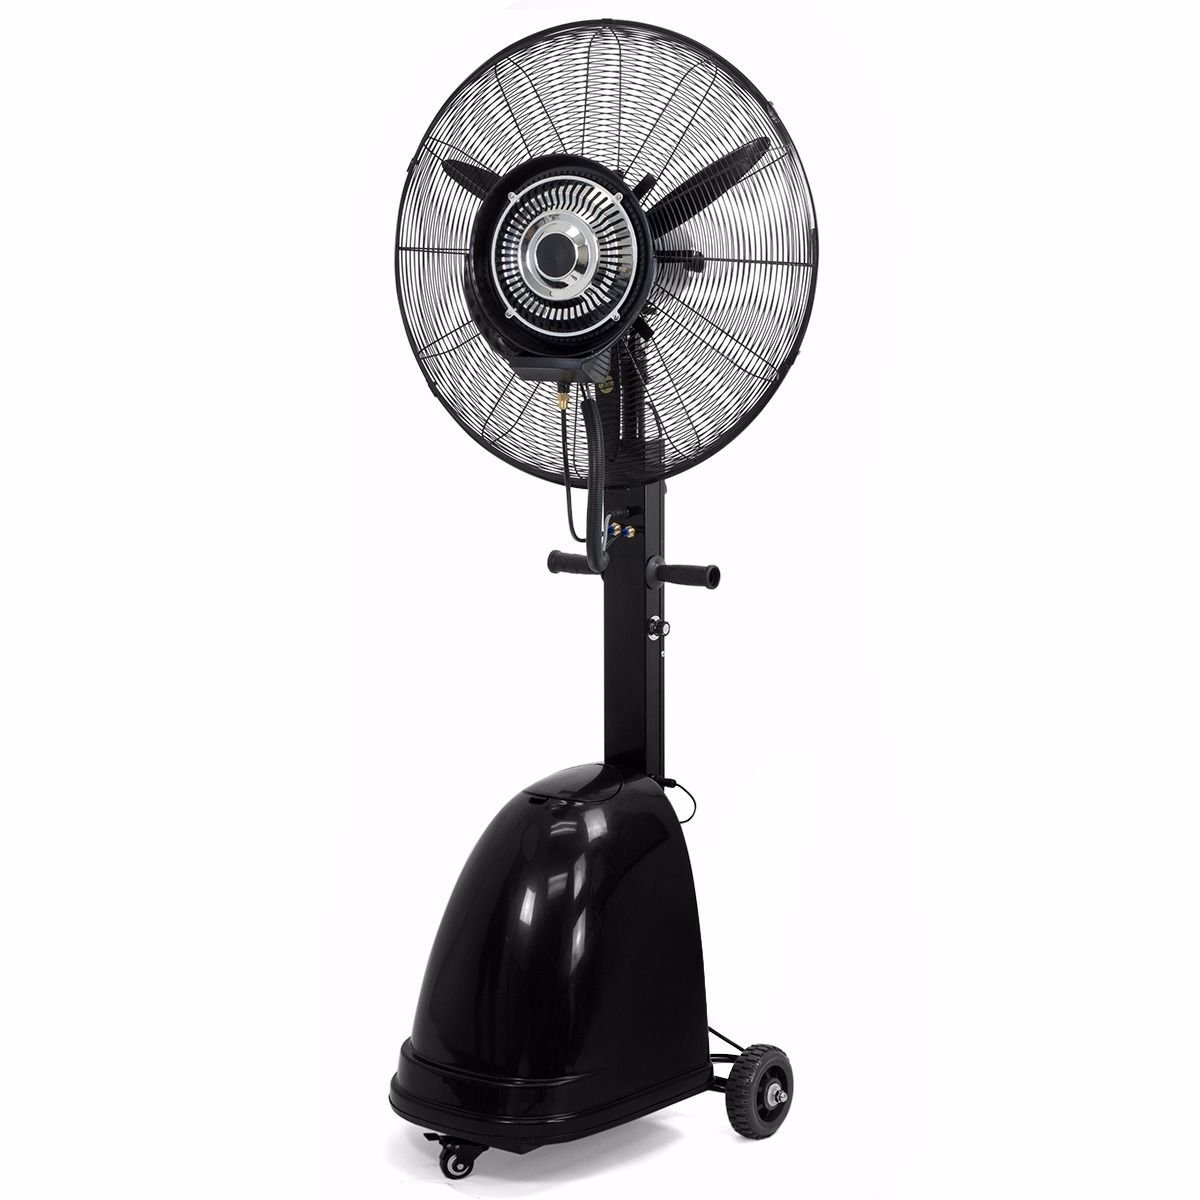 9TRADING Commercial 26'' High-Velocity Outdoor indoor Mist Fan Black Industrial Cool, Free Tax, Delivered within 10 days by 9TRADING